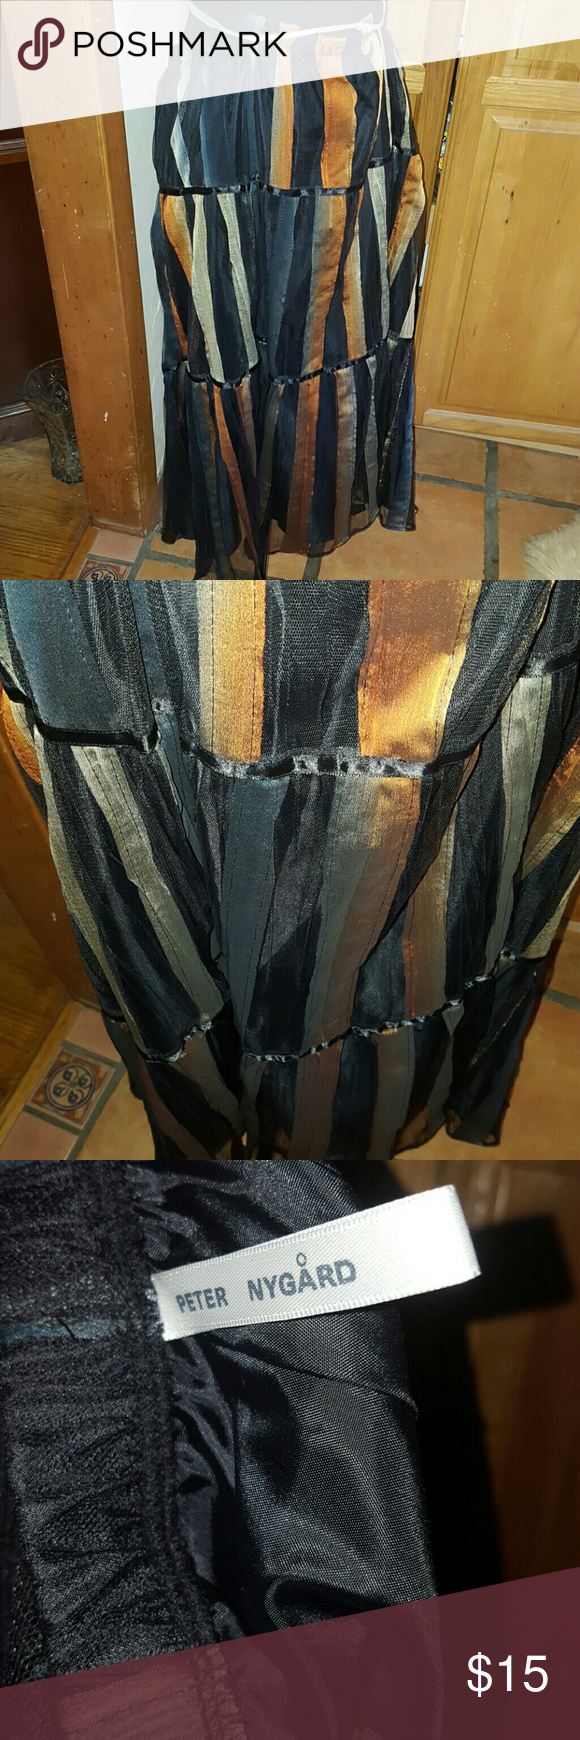 Boon Skirt Multi-colored --- muted browns, greens, silver, black, blue. Polyester. Long skirt. Peter nygard Skirts Maxi